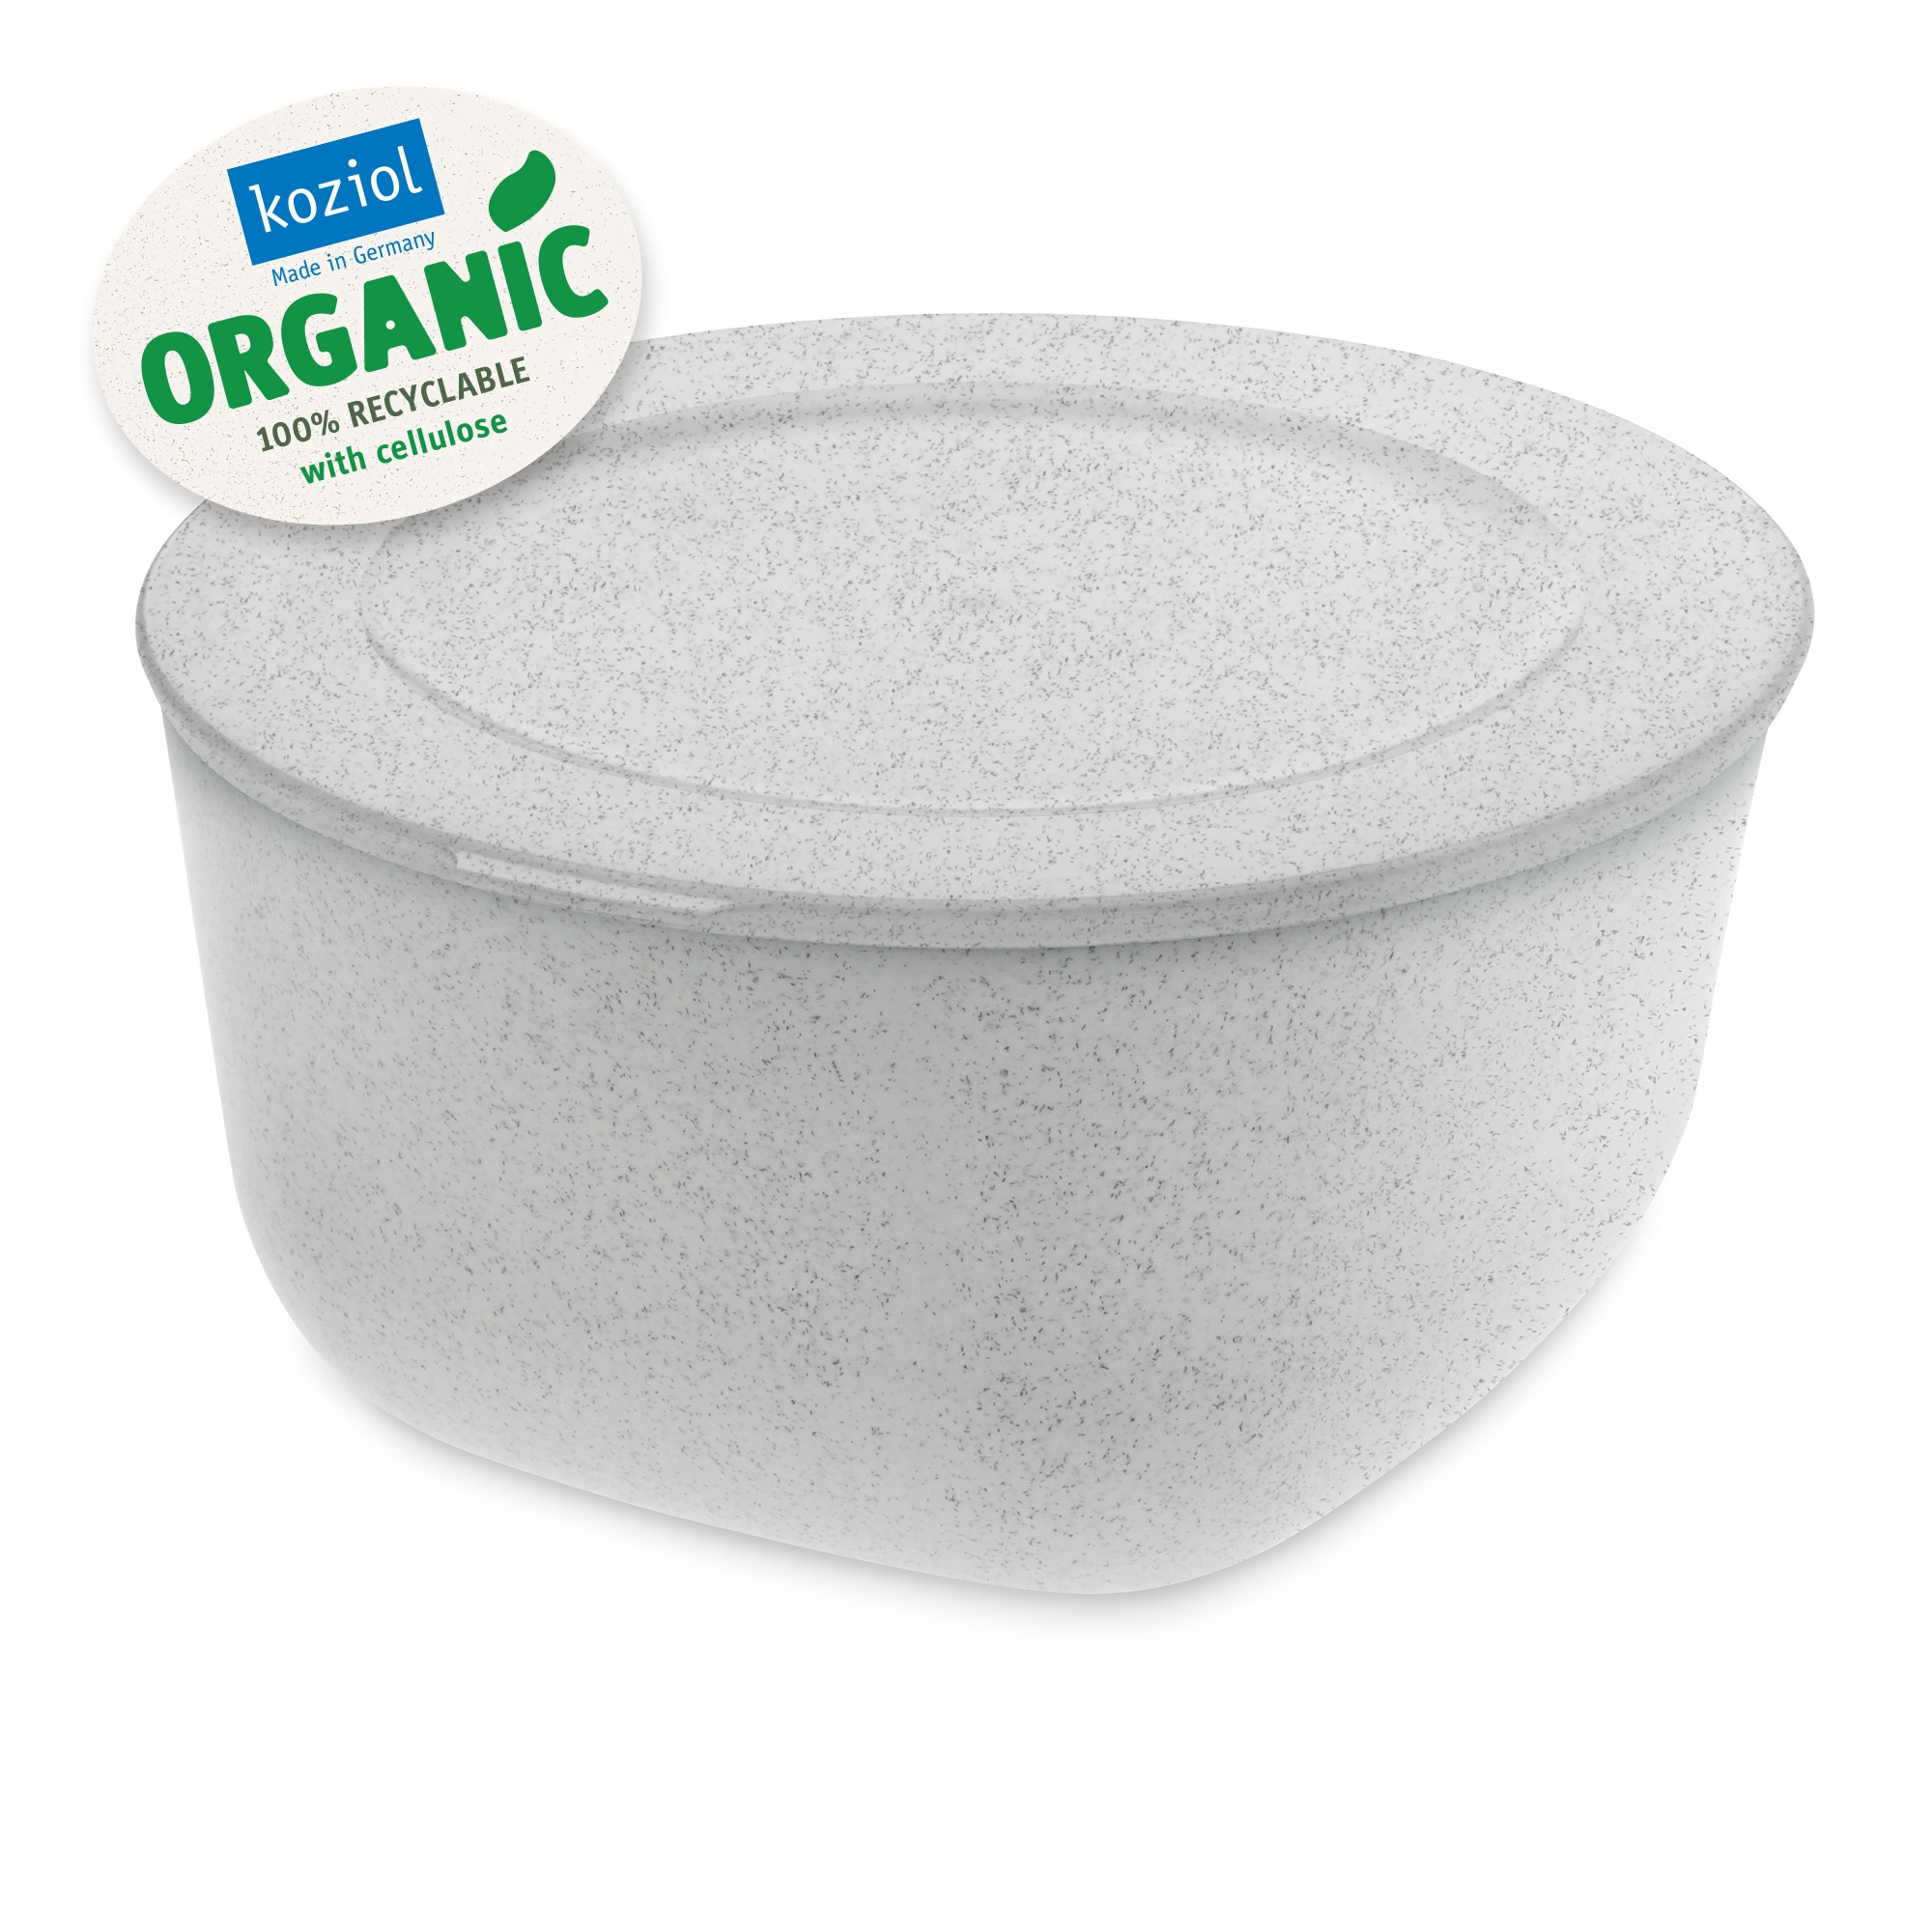 Caserola cu capac, 100% Reciclabil, Connect L Organic Gri, 2 L imagine